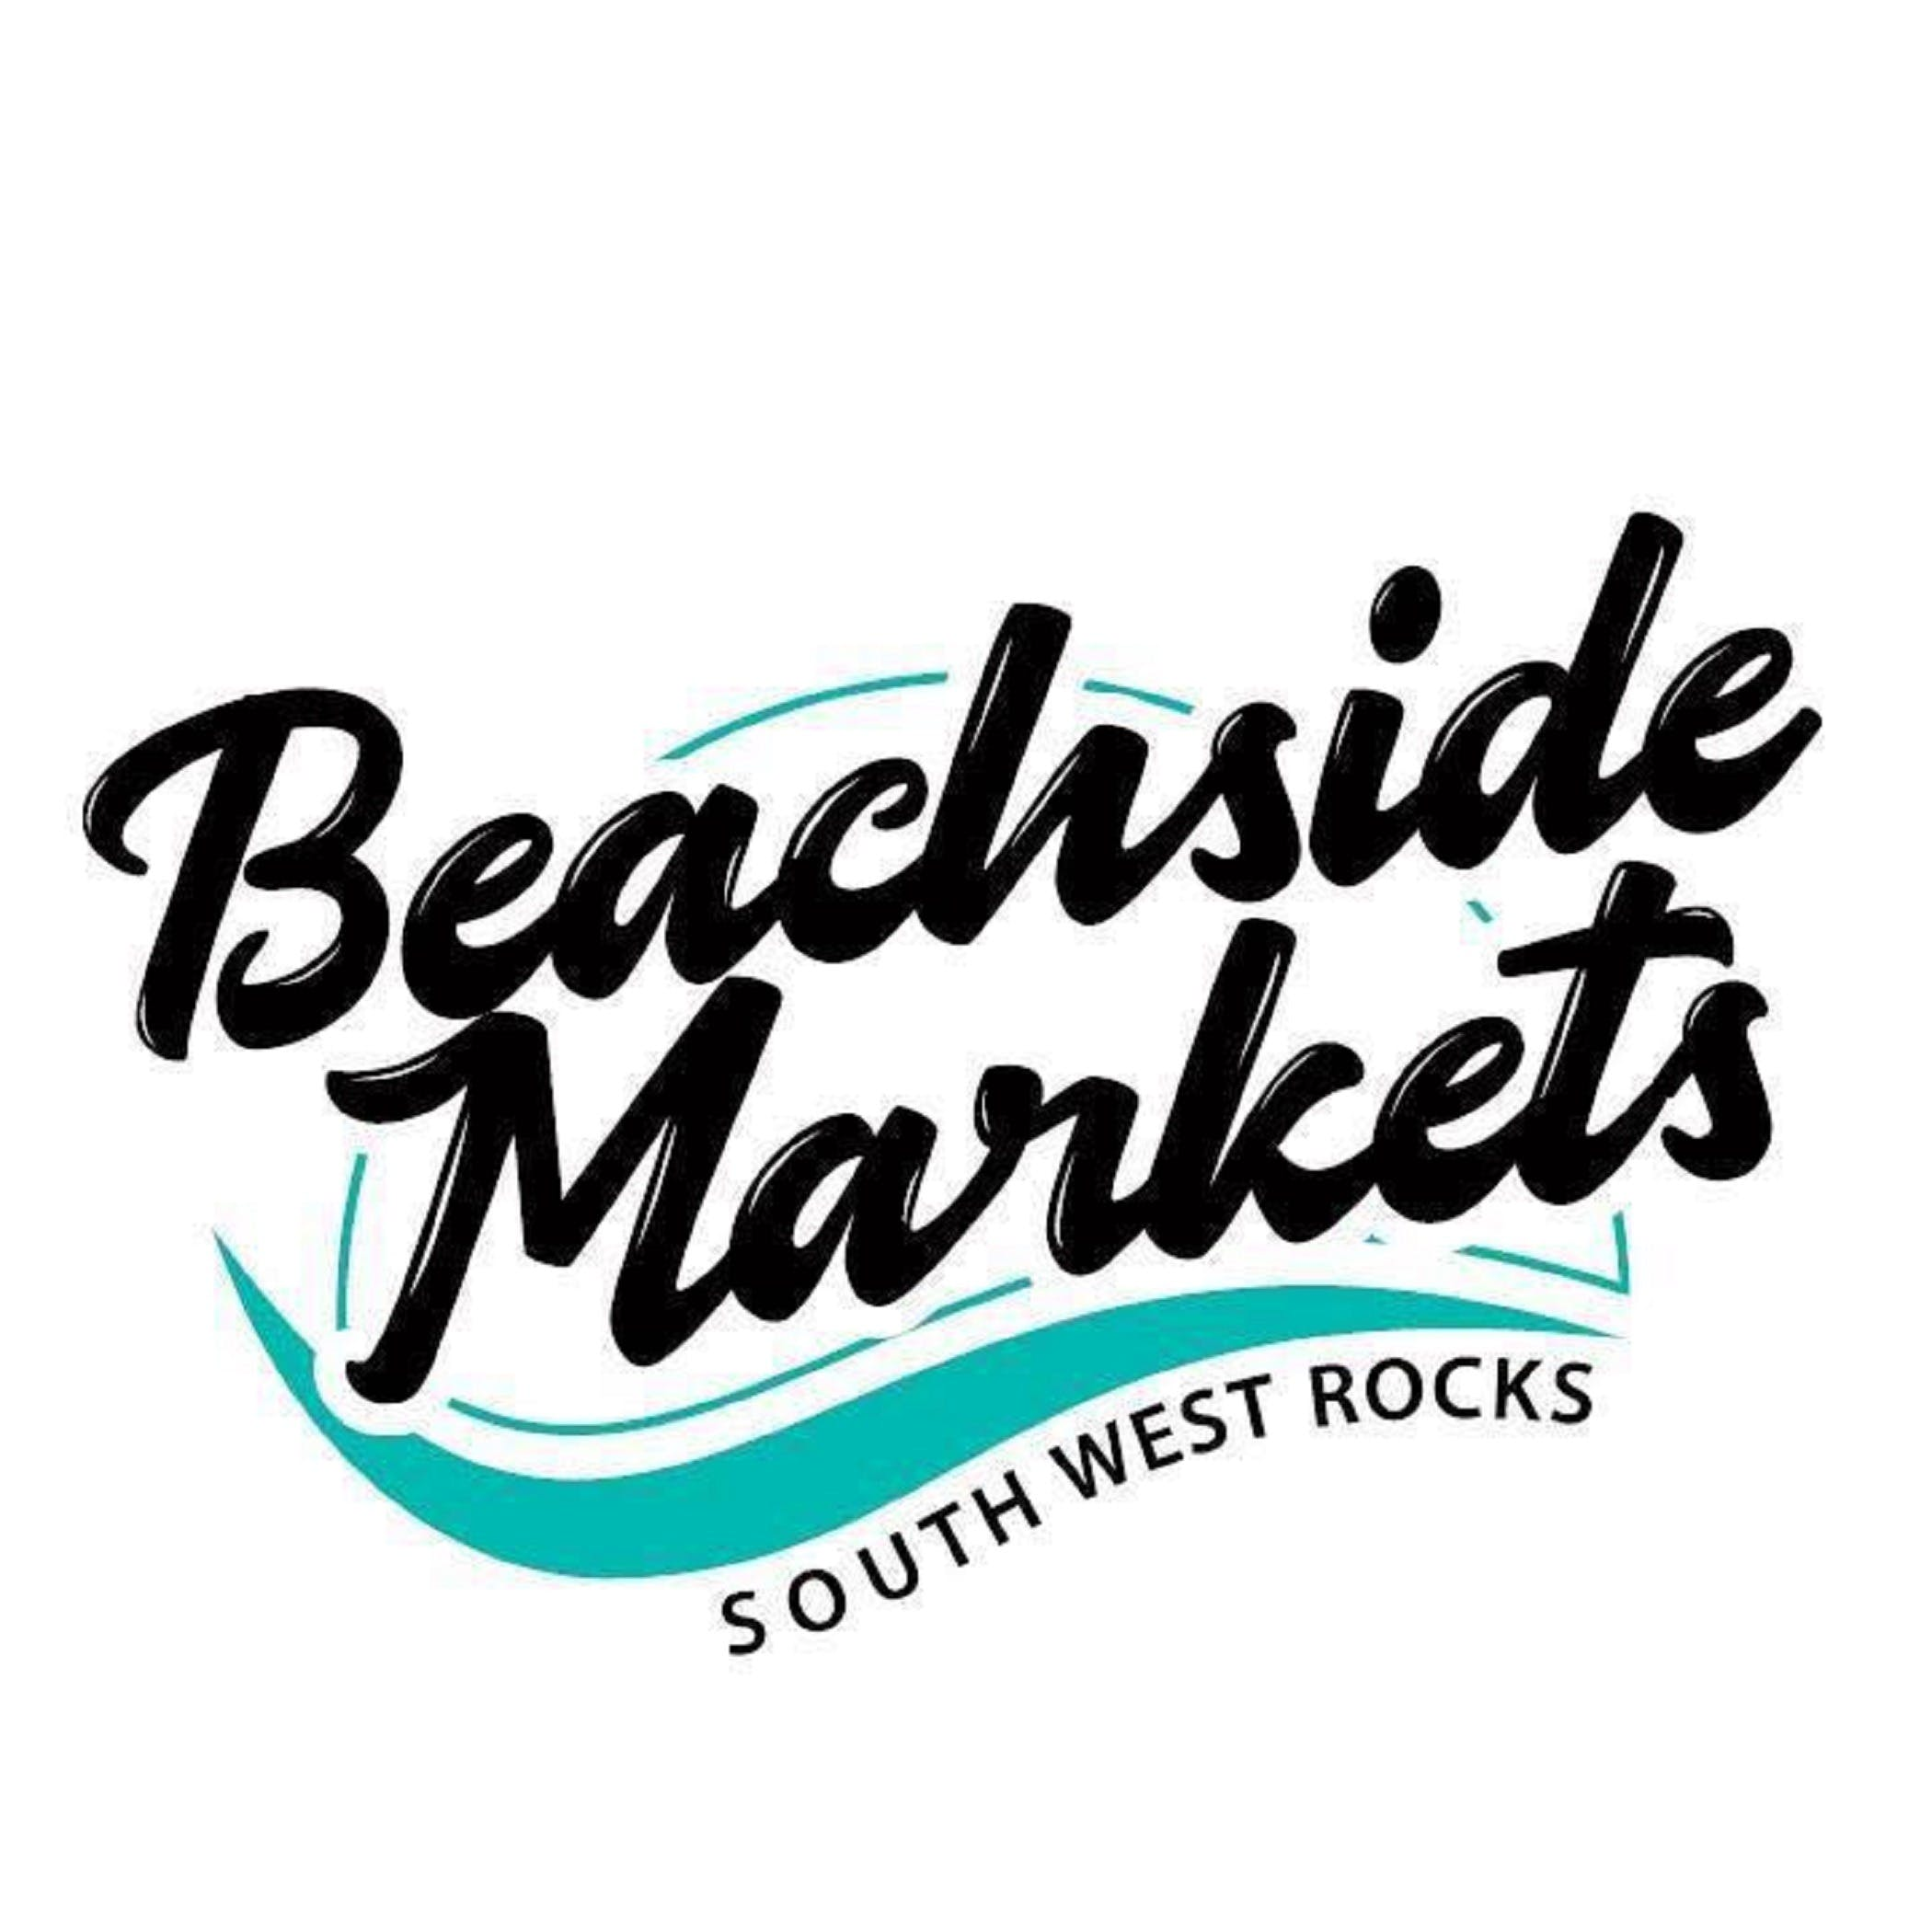 Beachside Markets South West Rocks - Tweed Heads Accommodation